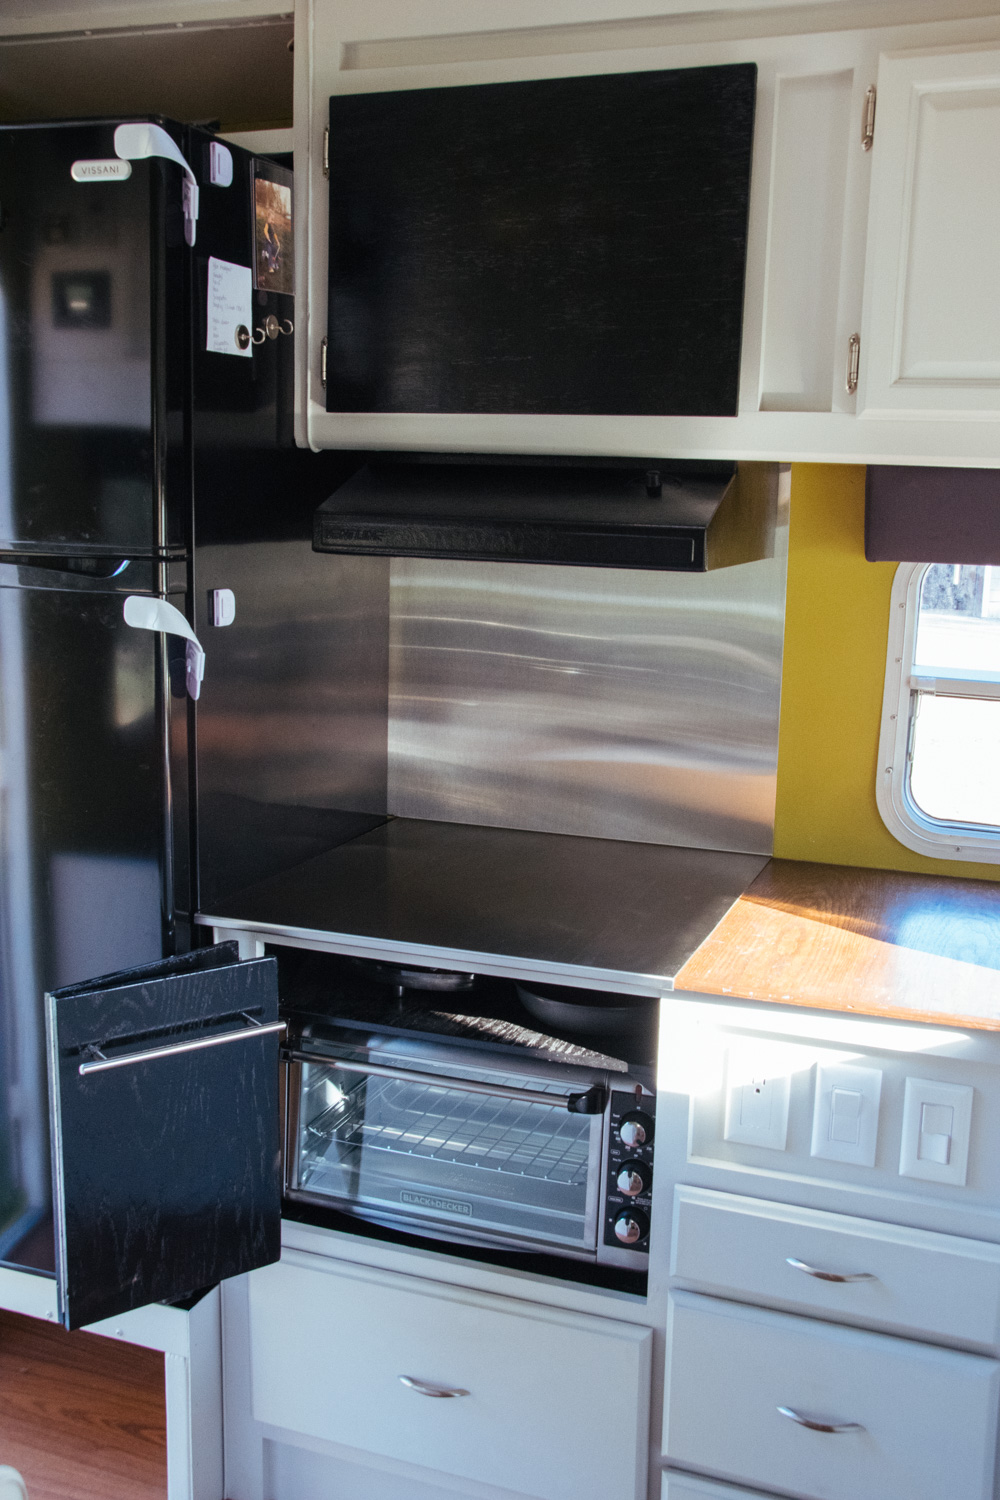 Our new kitchen! The induction cooktop is stored in the shelf above the toaster oven.